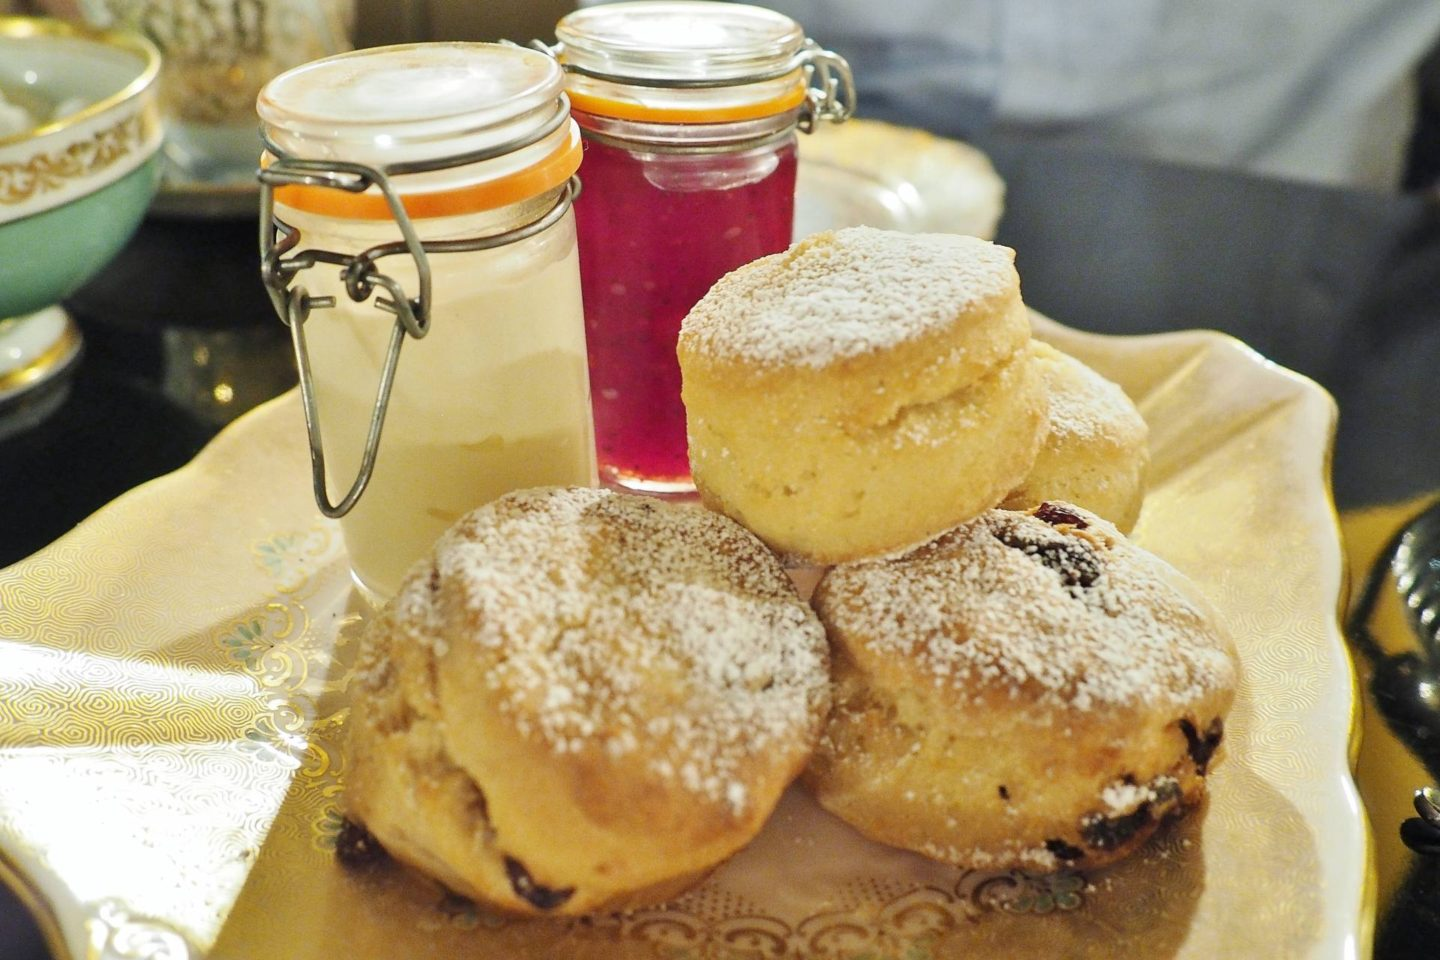 Emma Victoria Stokes Edgbaston Boutique Hotel Afternoon Tea Winter Scones Jam Cream